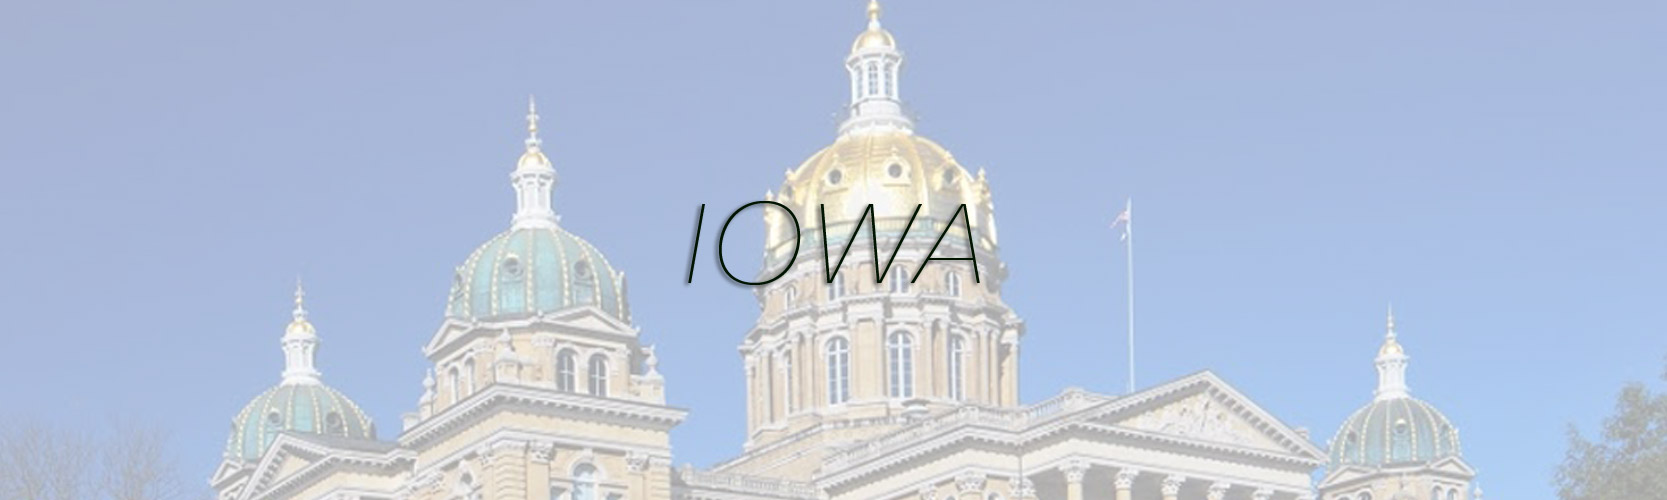 Shipping Futons, Sofa Beds, and Other Futon Shop products to Iowa